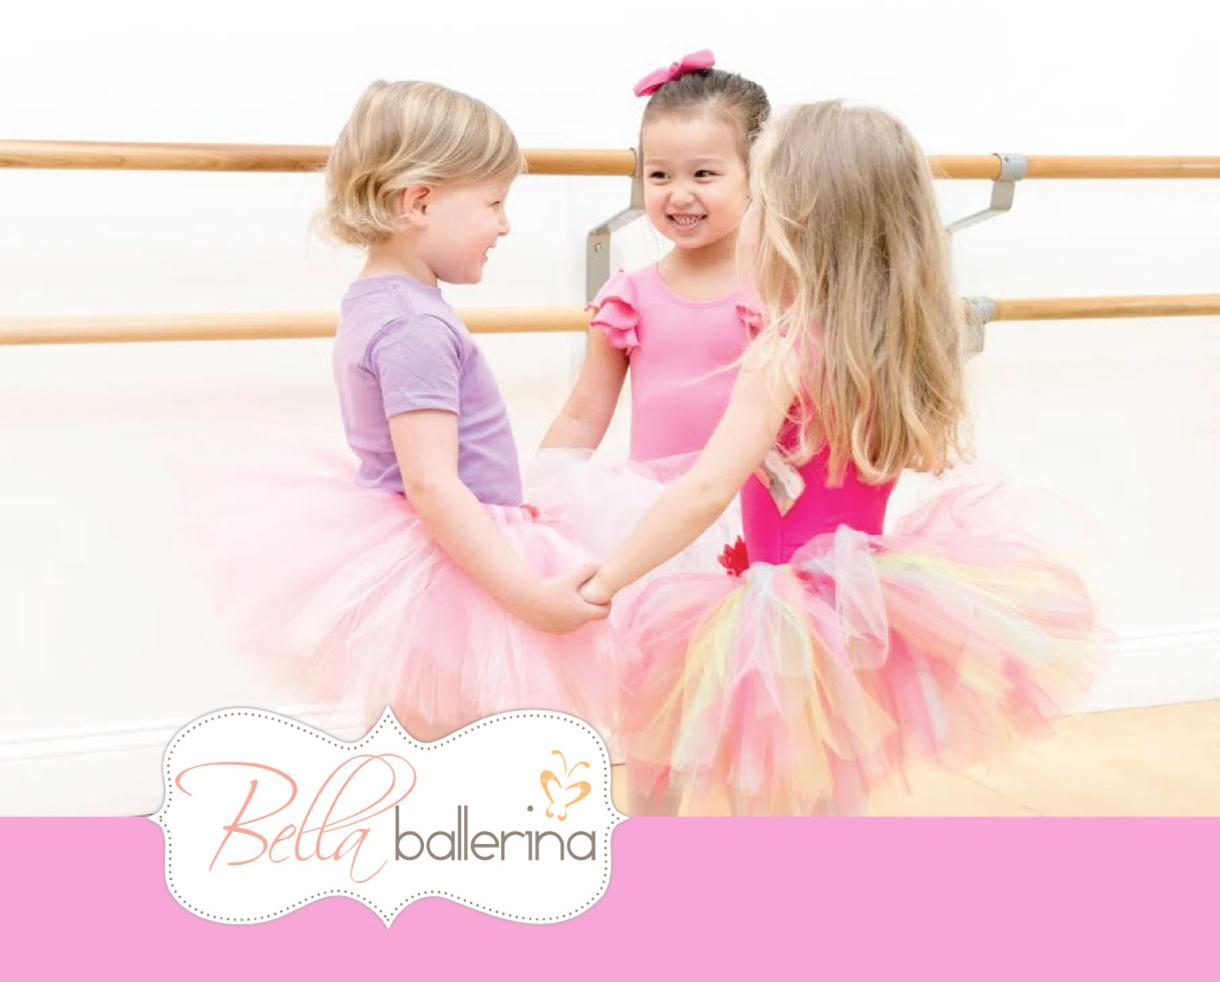 $199 for Bella Ballerina's 12-Week Winter Dance Classes for Ages 18mos-10yrs in Leesburg, Brambleton & Herndon (34% Off)